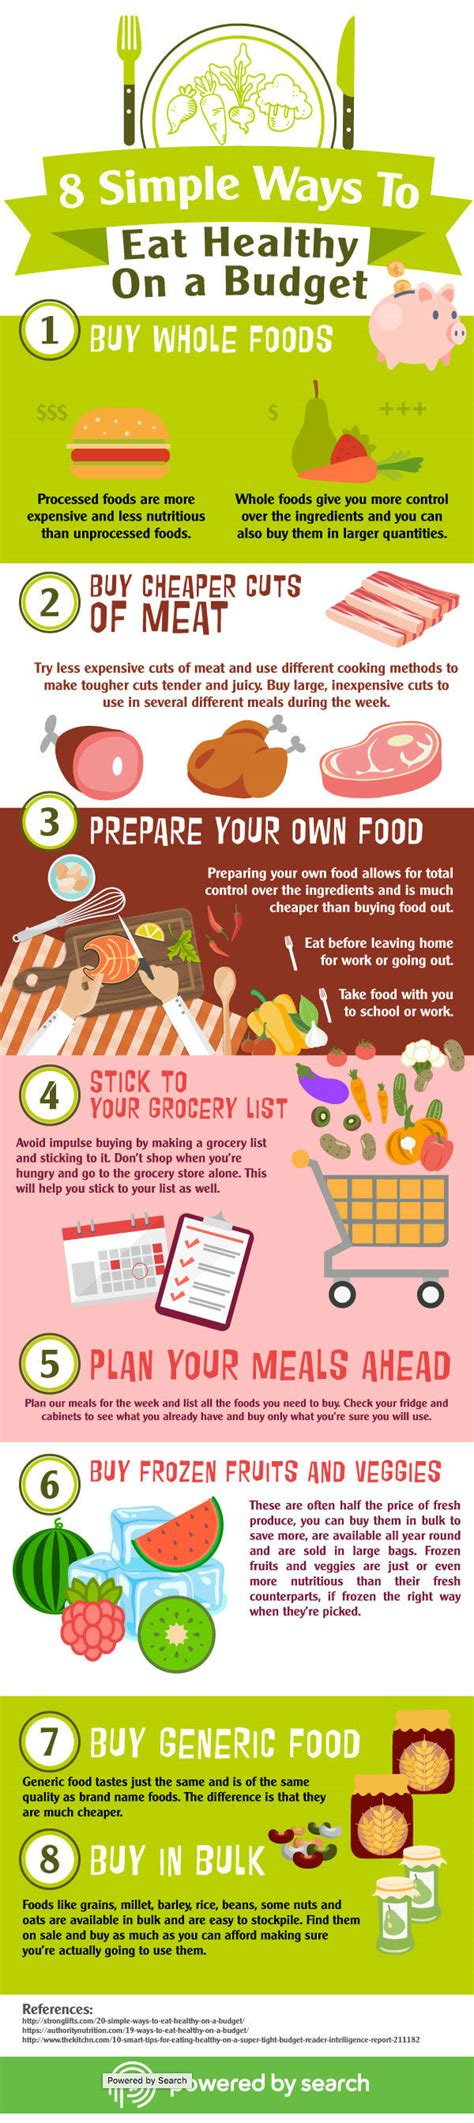 8 Simple Ways To Eat Healthy On A Budget  Welcome To Get Big Ideas